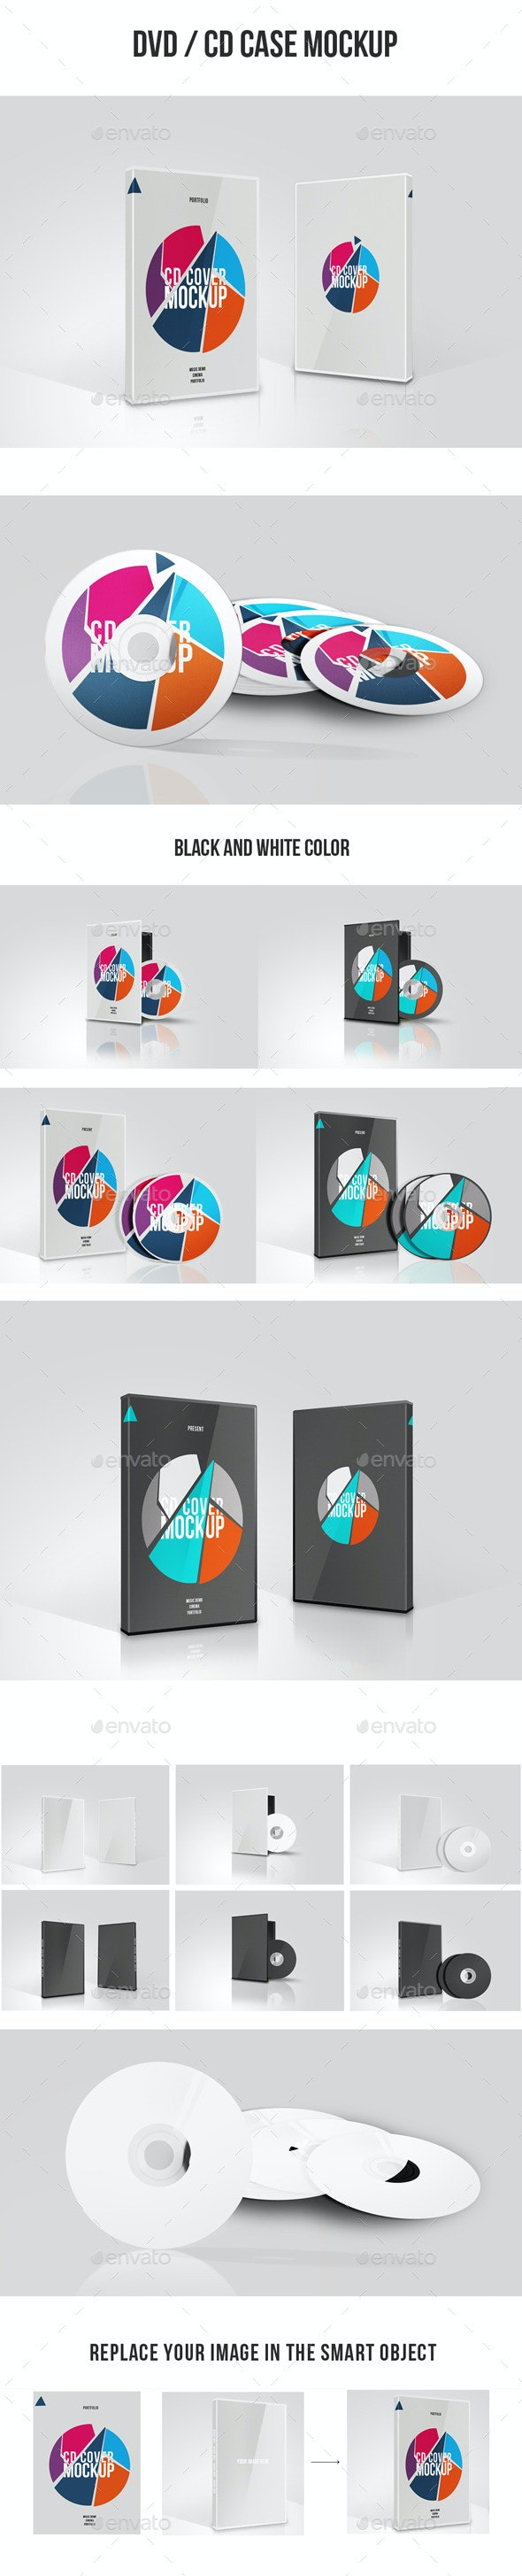 DVD / CD Case Cover Mock up - Product Mock-Ups Graphics